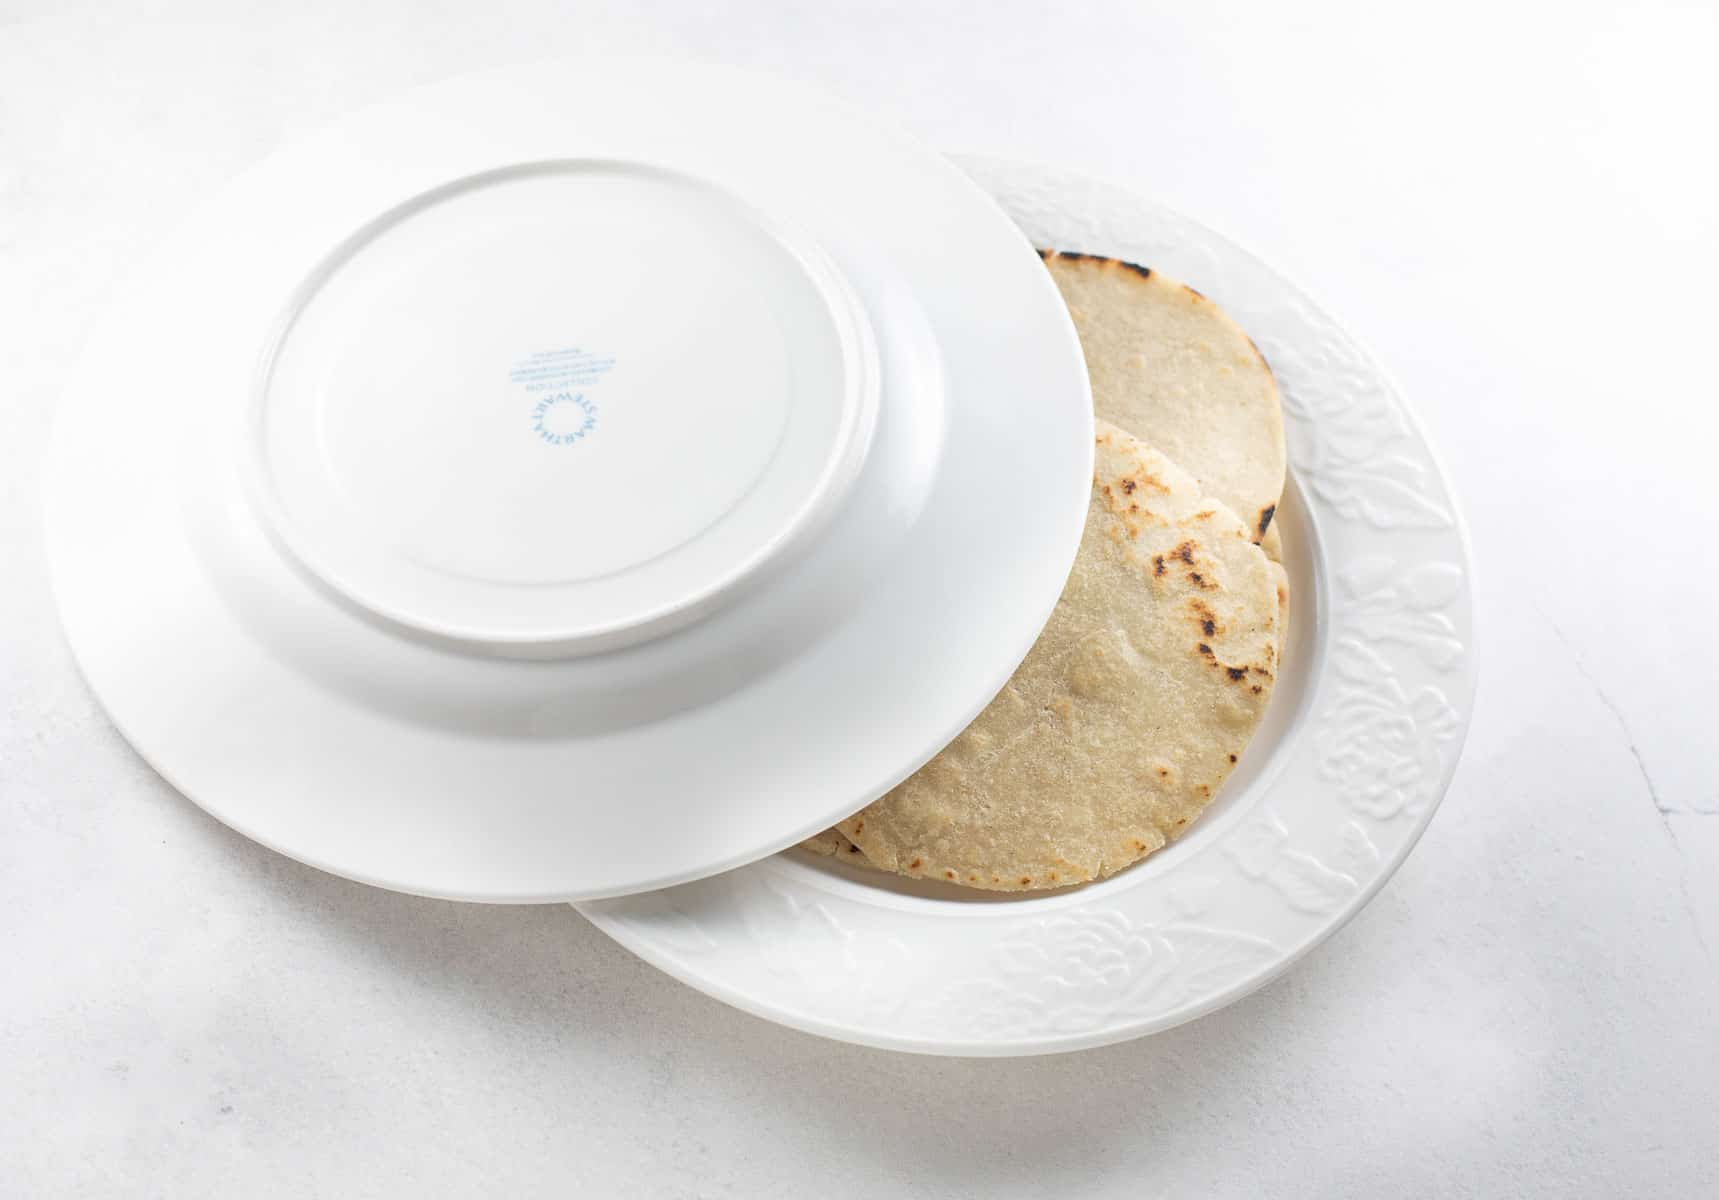 tortillas being placed in between 2 white plates to keep warm